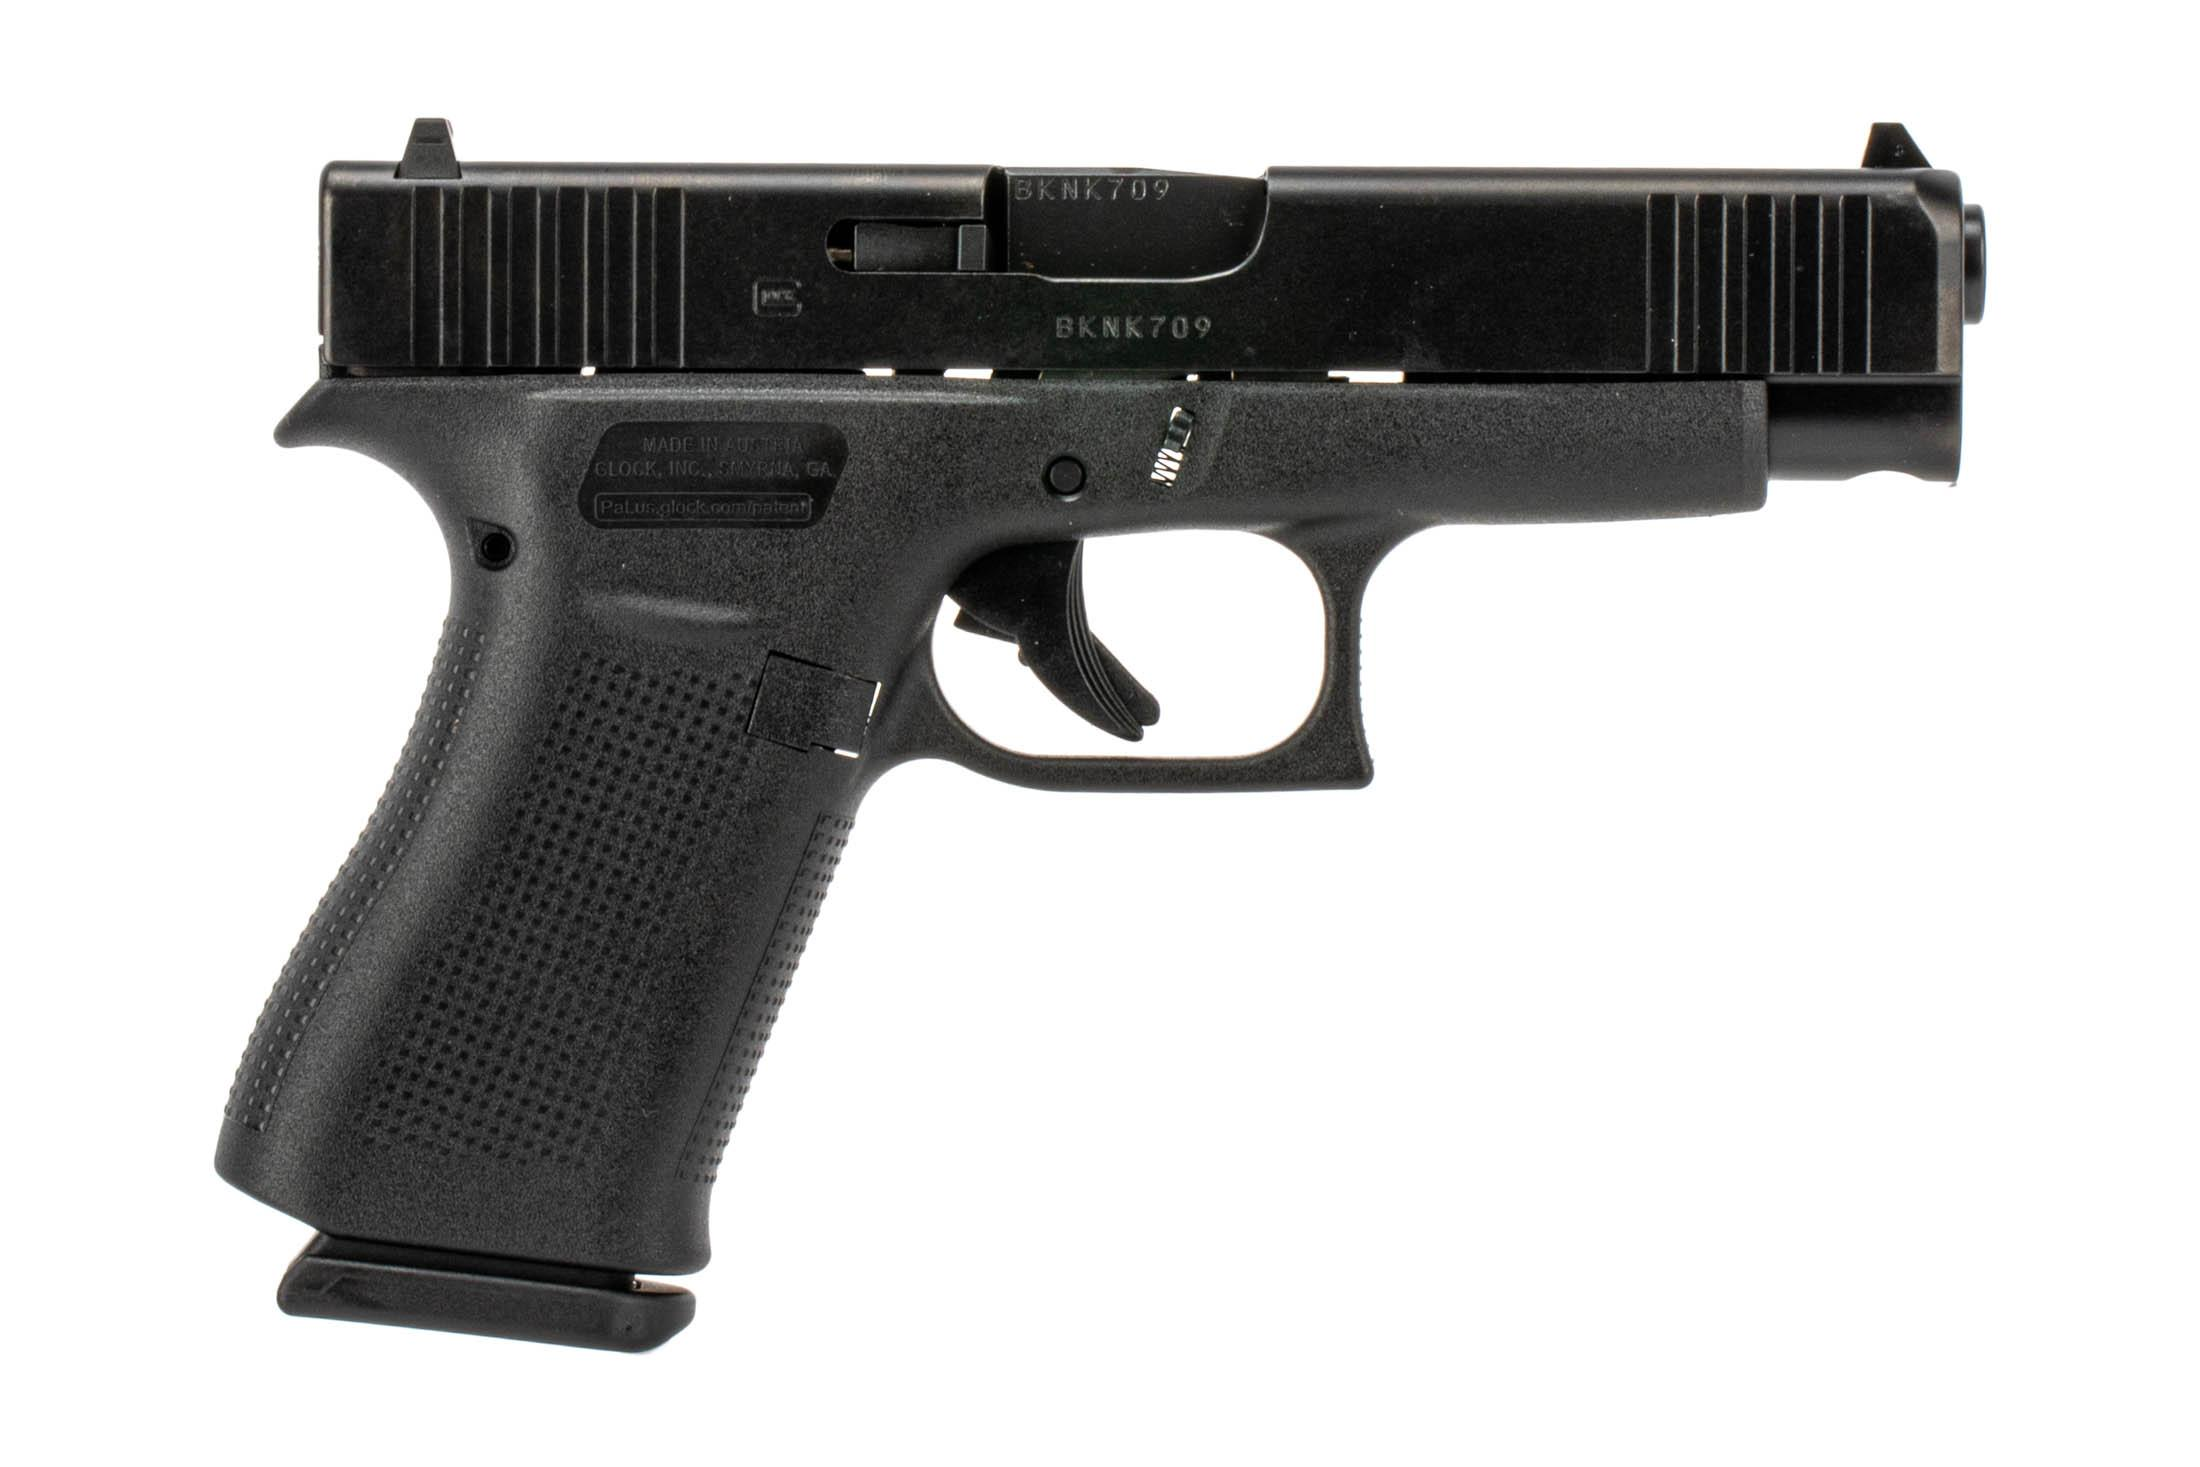 The Glock G48 compact 9mm pistol features a slim profile for concealed carry with tough nDLC black finish